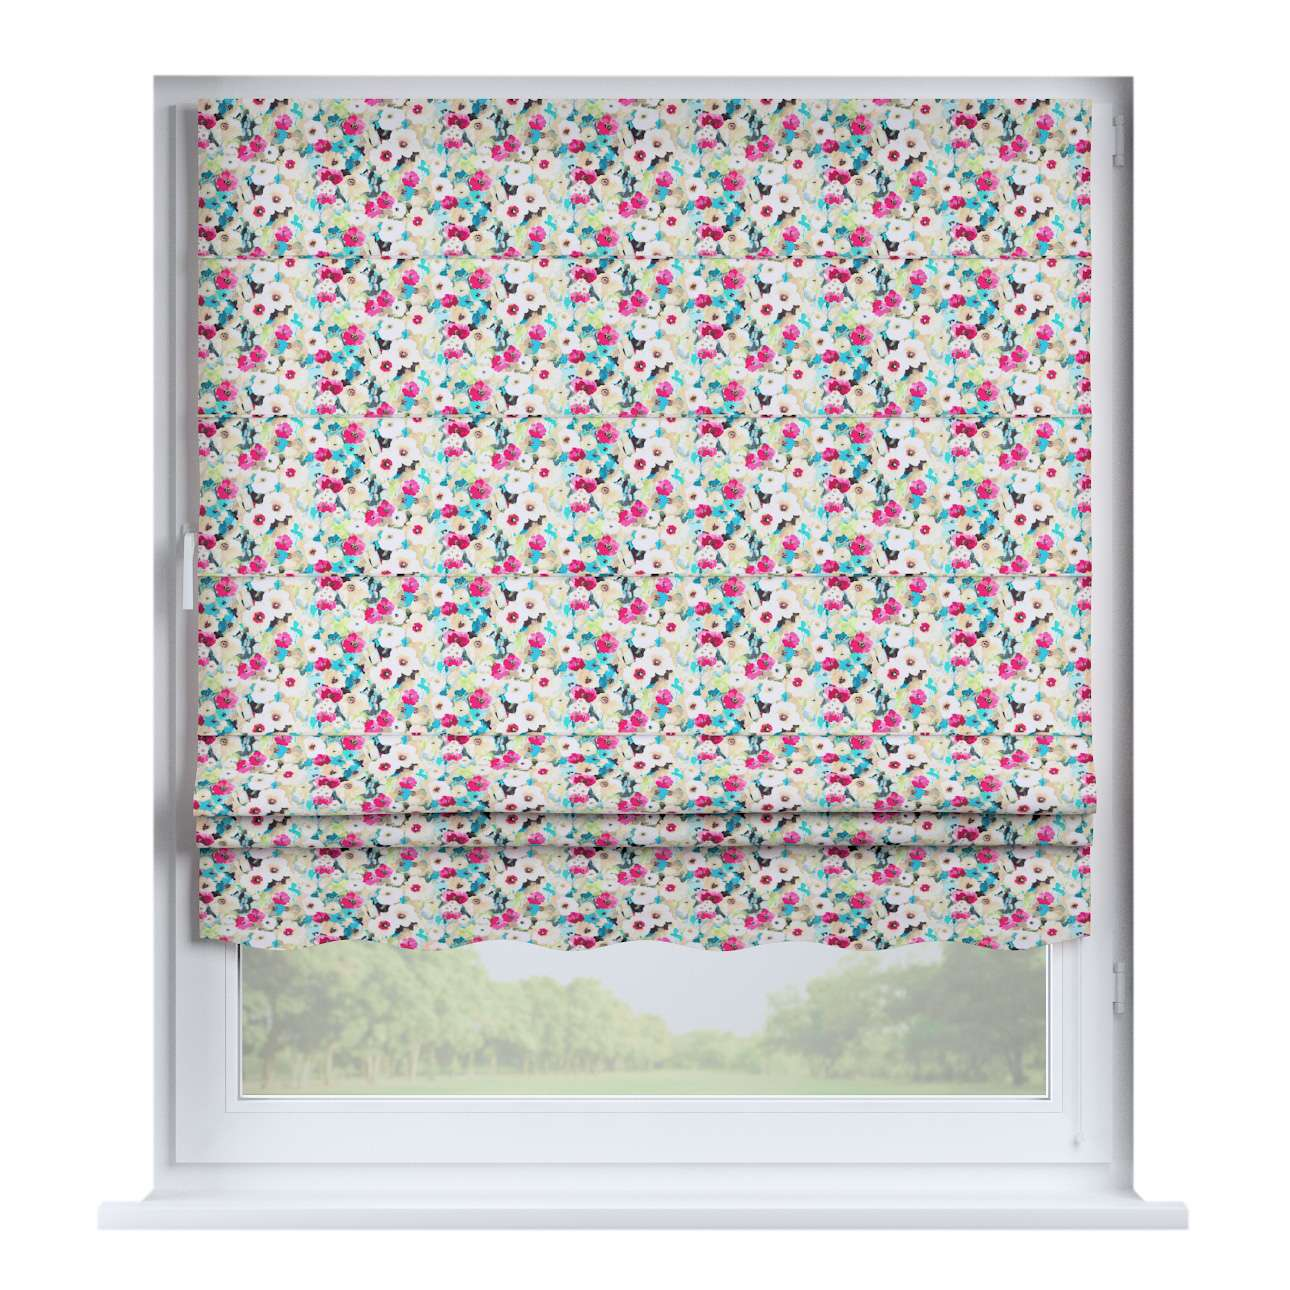 Florence roman blind  80 x 170 cm (31.5 x 67 inch) in collection Monet, fabric: 140-10